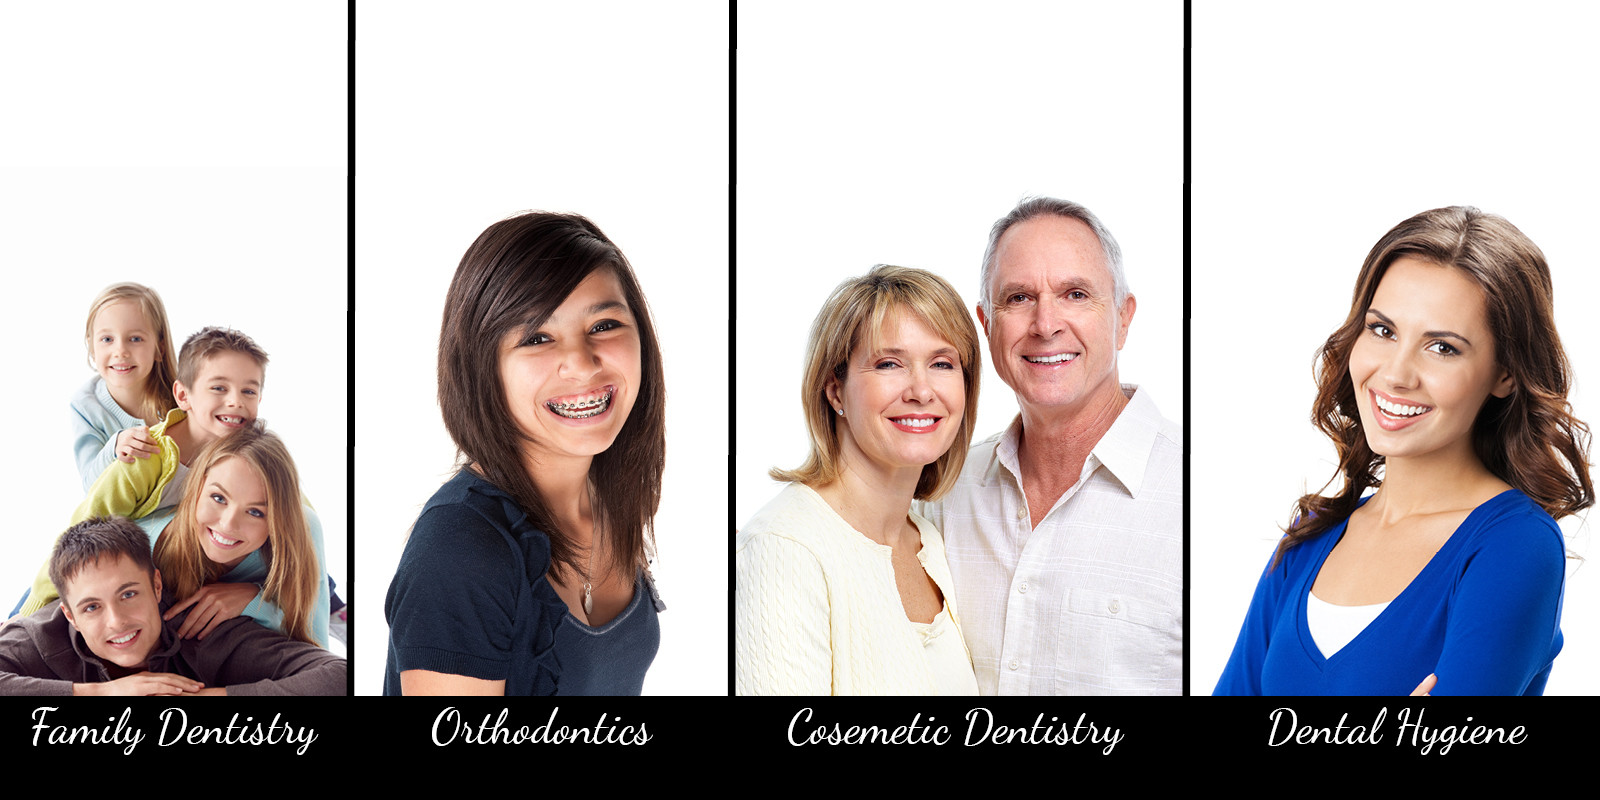 Advanced Dentistry of collegeville multi speciality office